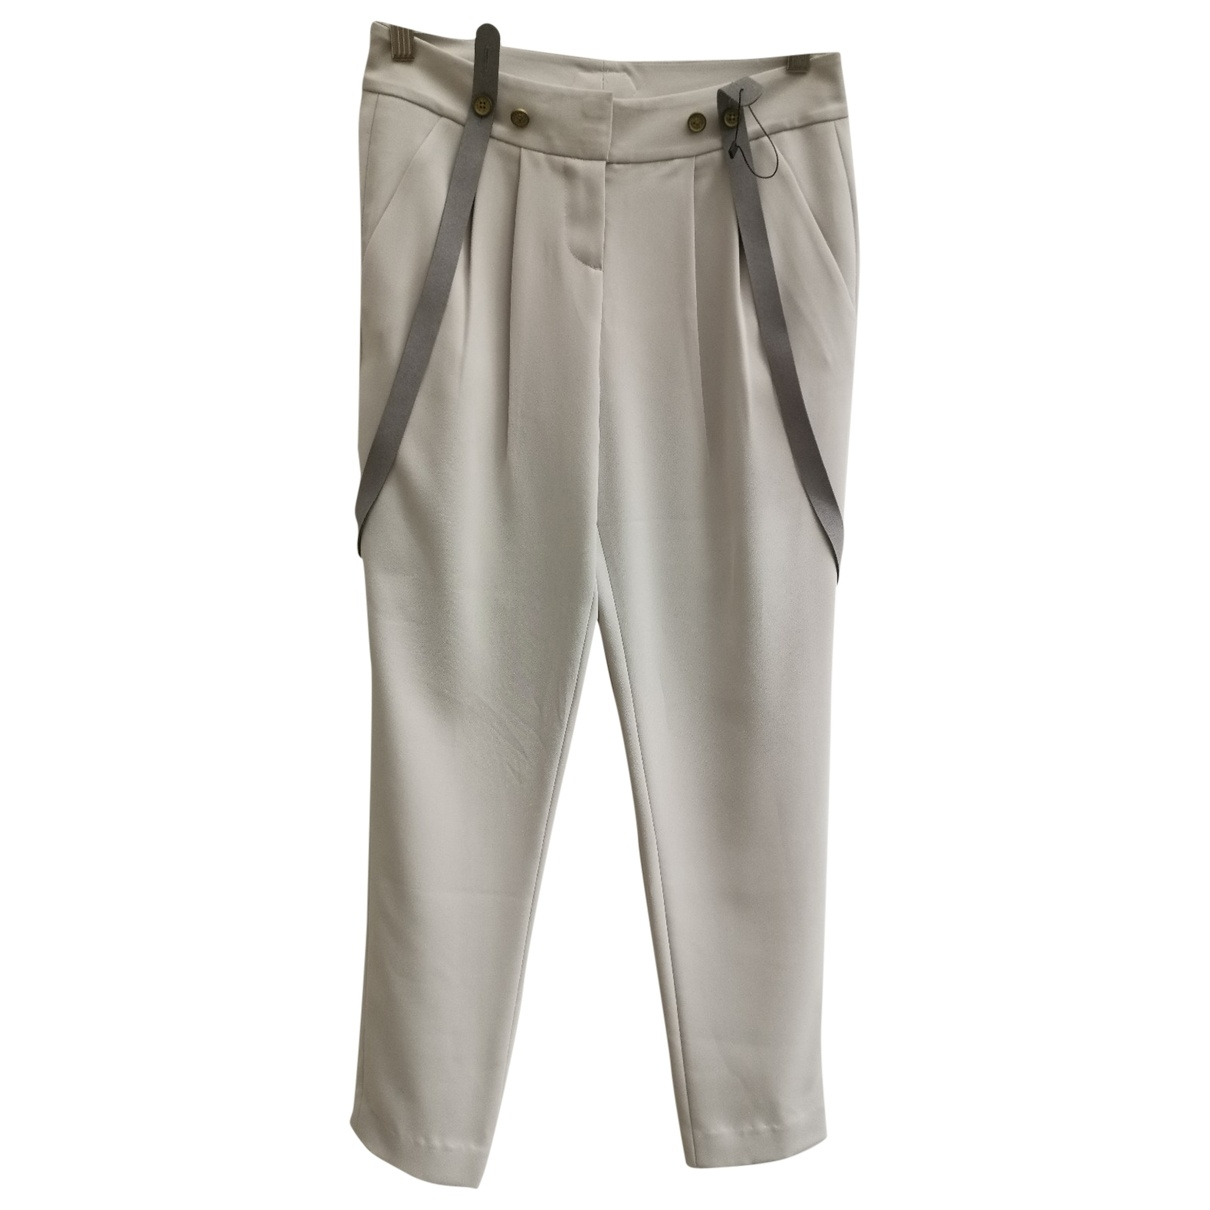 Emporio Armani \N Grey Trousers for Women 0 0-5